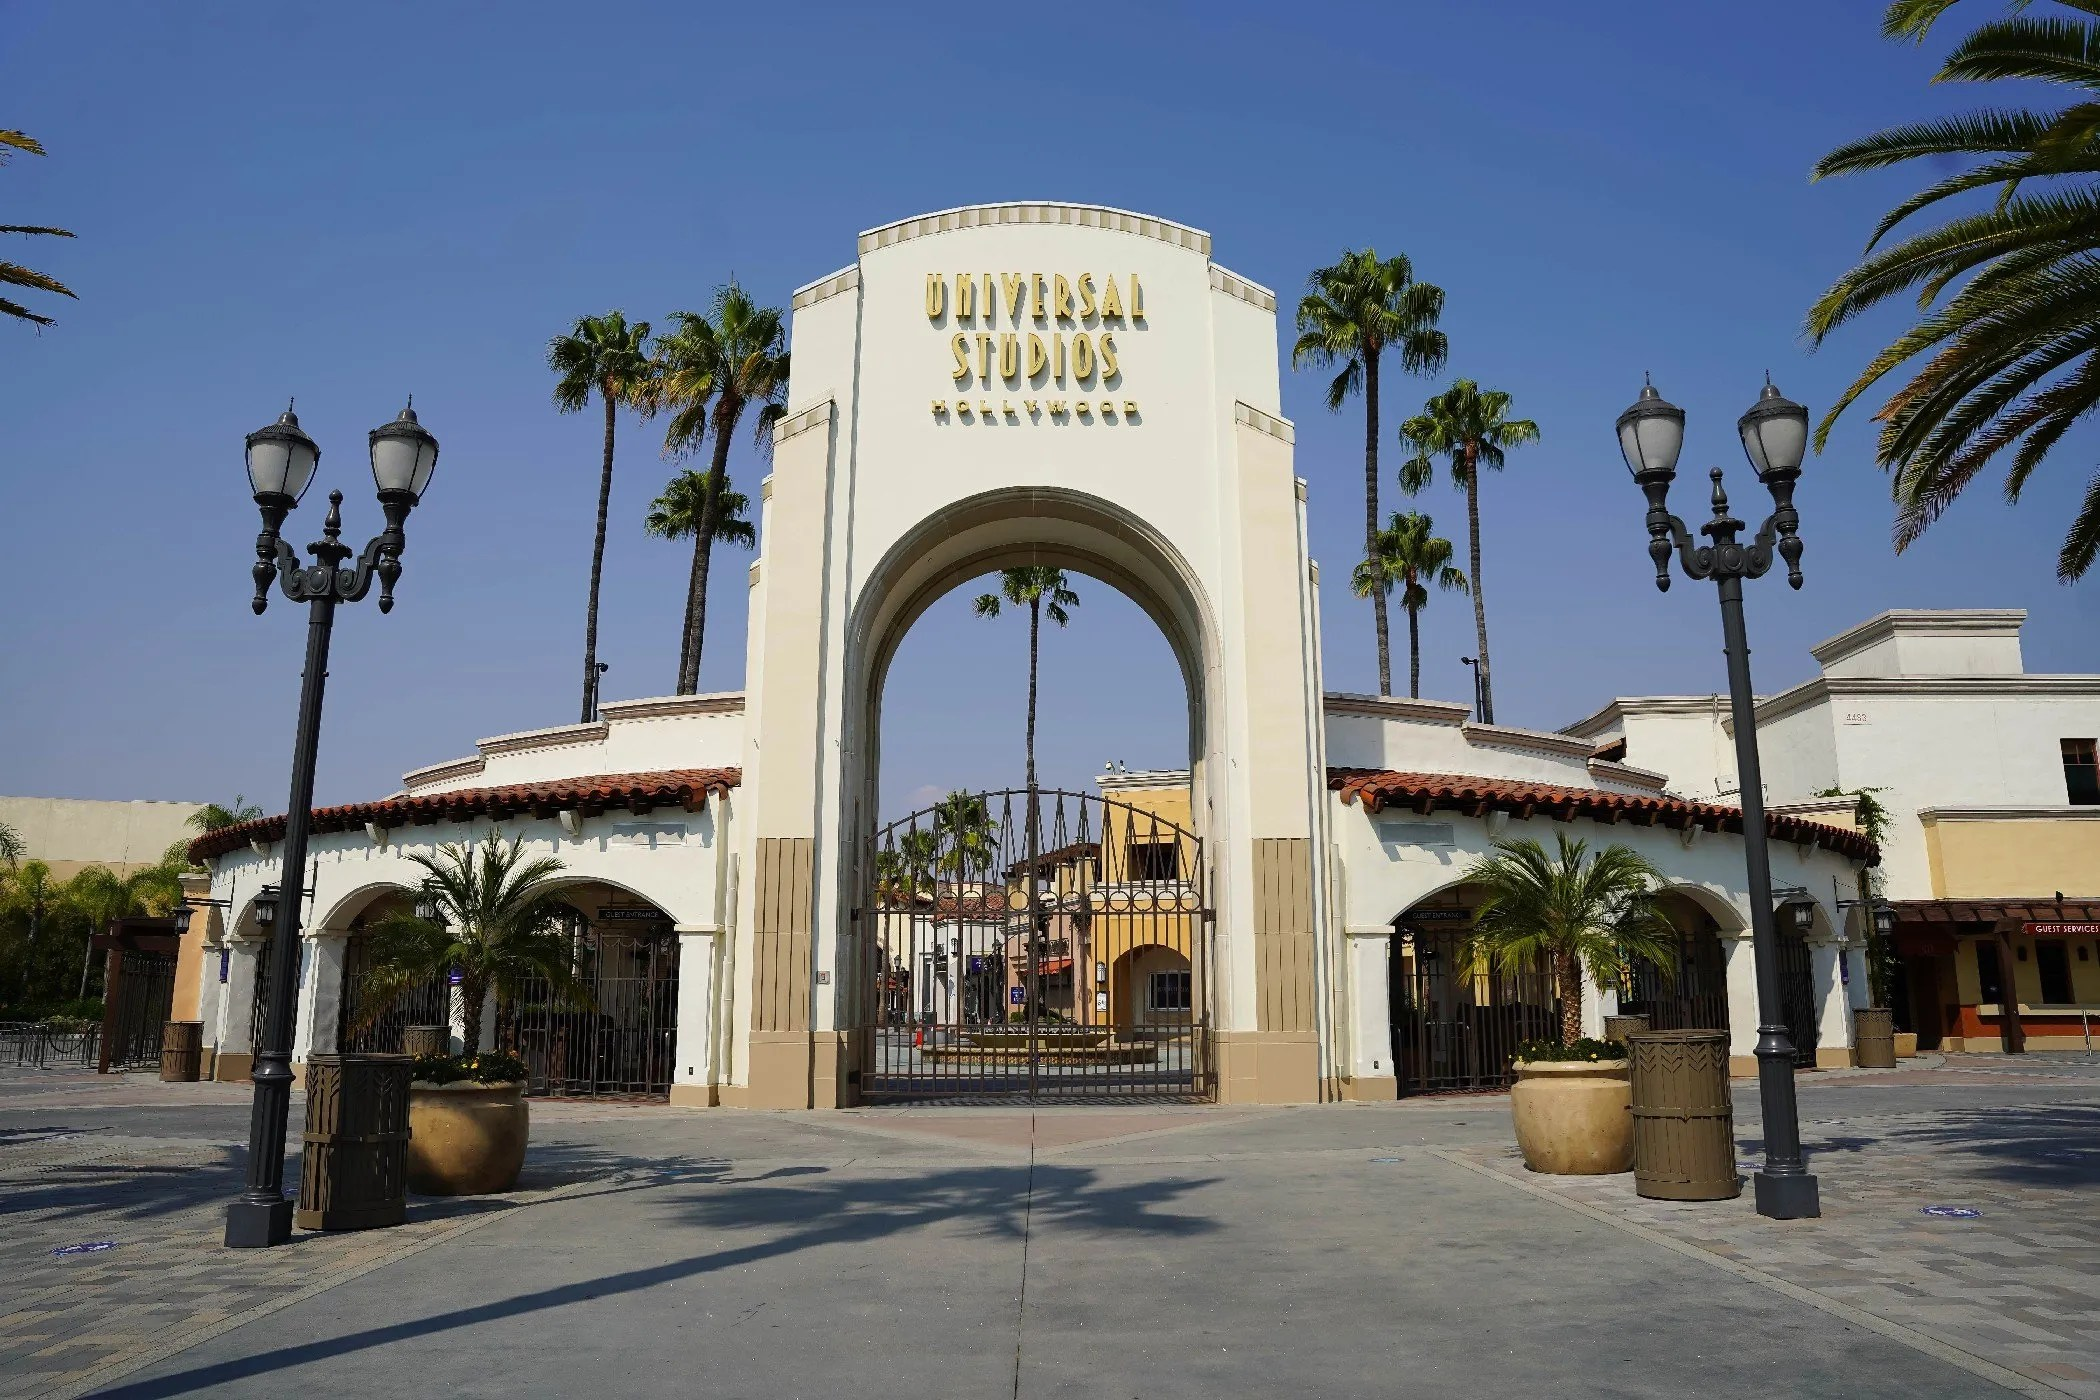 Photo Update: August 24, 2020 – CityWalk at Universal Studios Hollywood